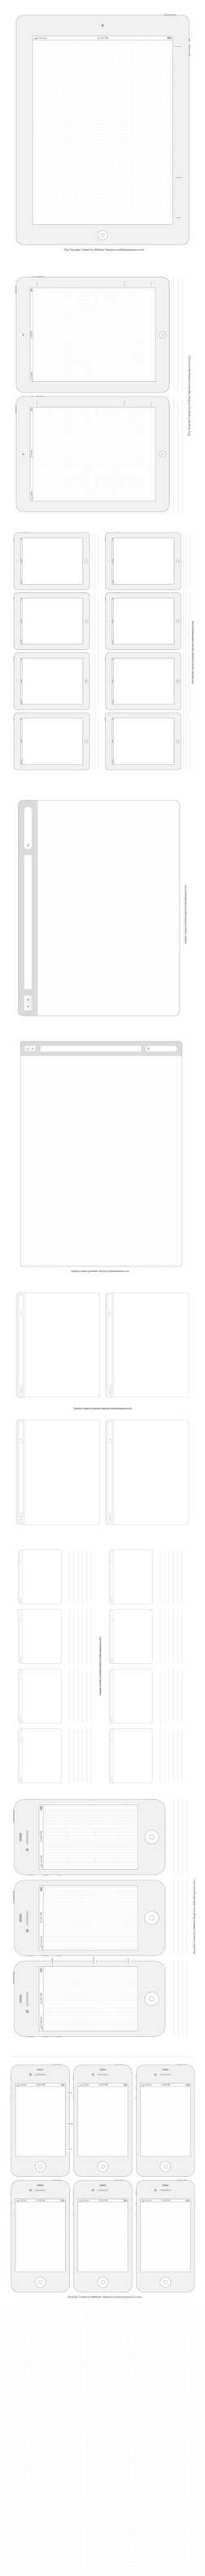 Printable UI Templates for iPhone 4s, iPad 2, etc. by matteo